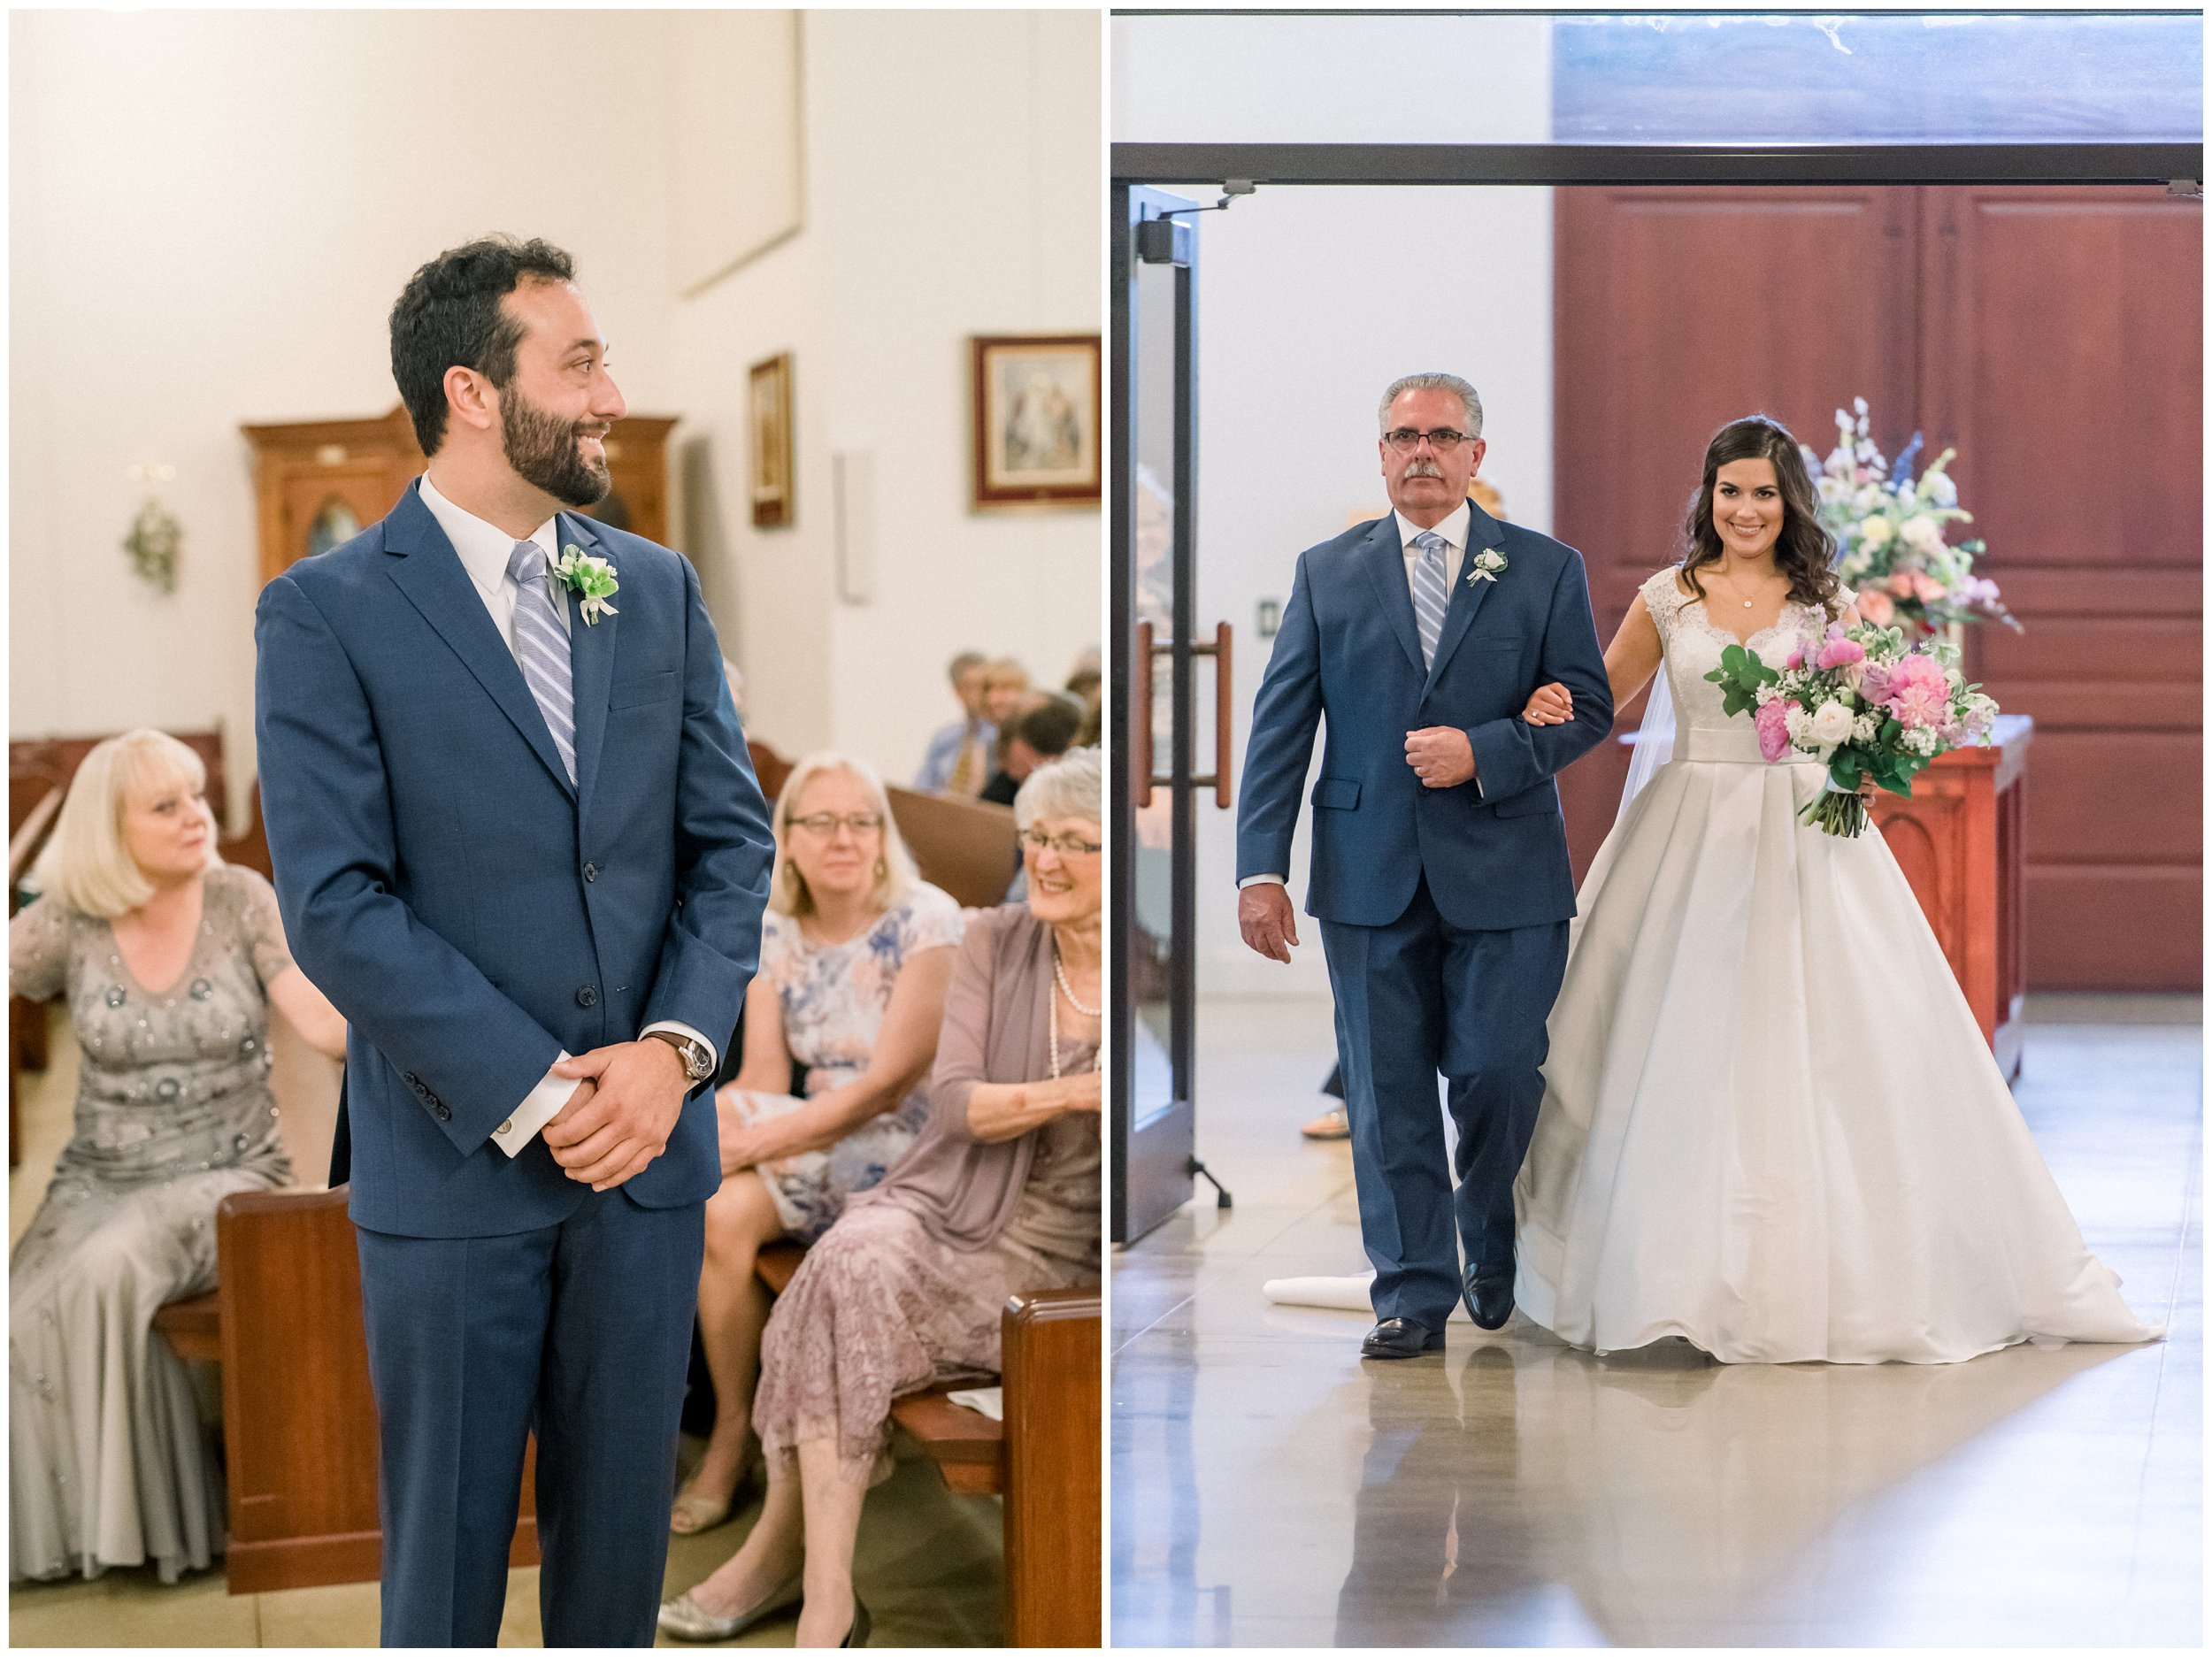 groom waiting for bride while father walks her down the aisle